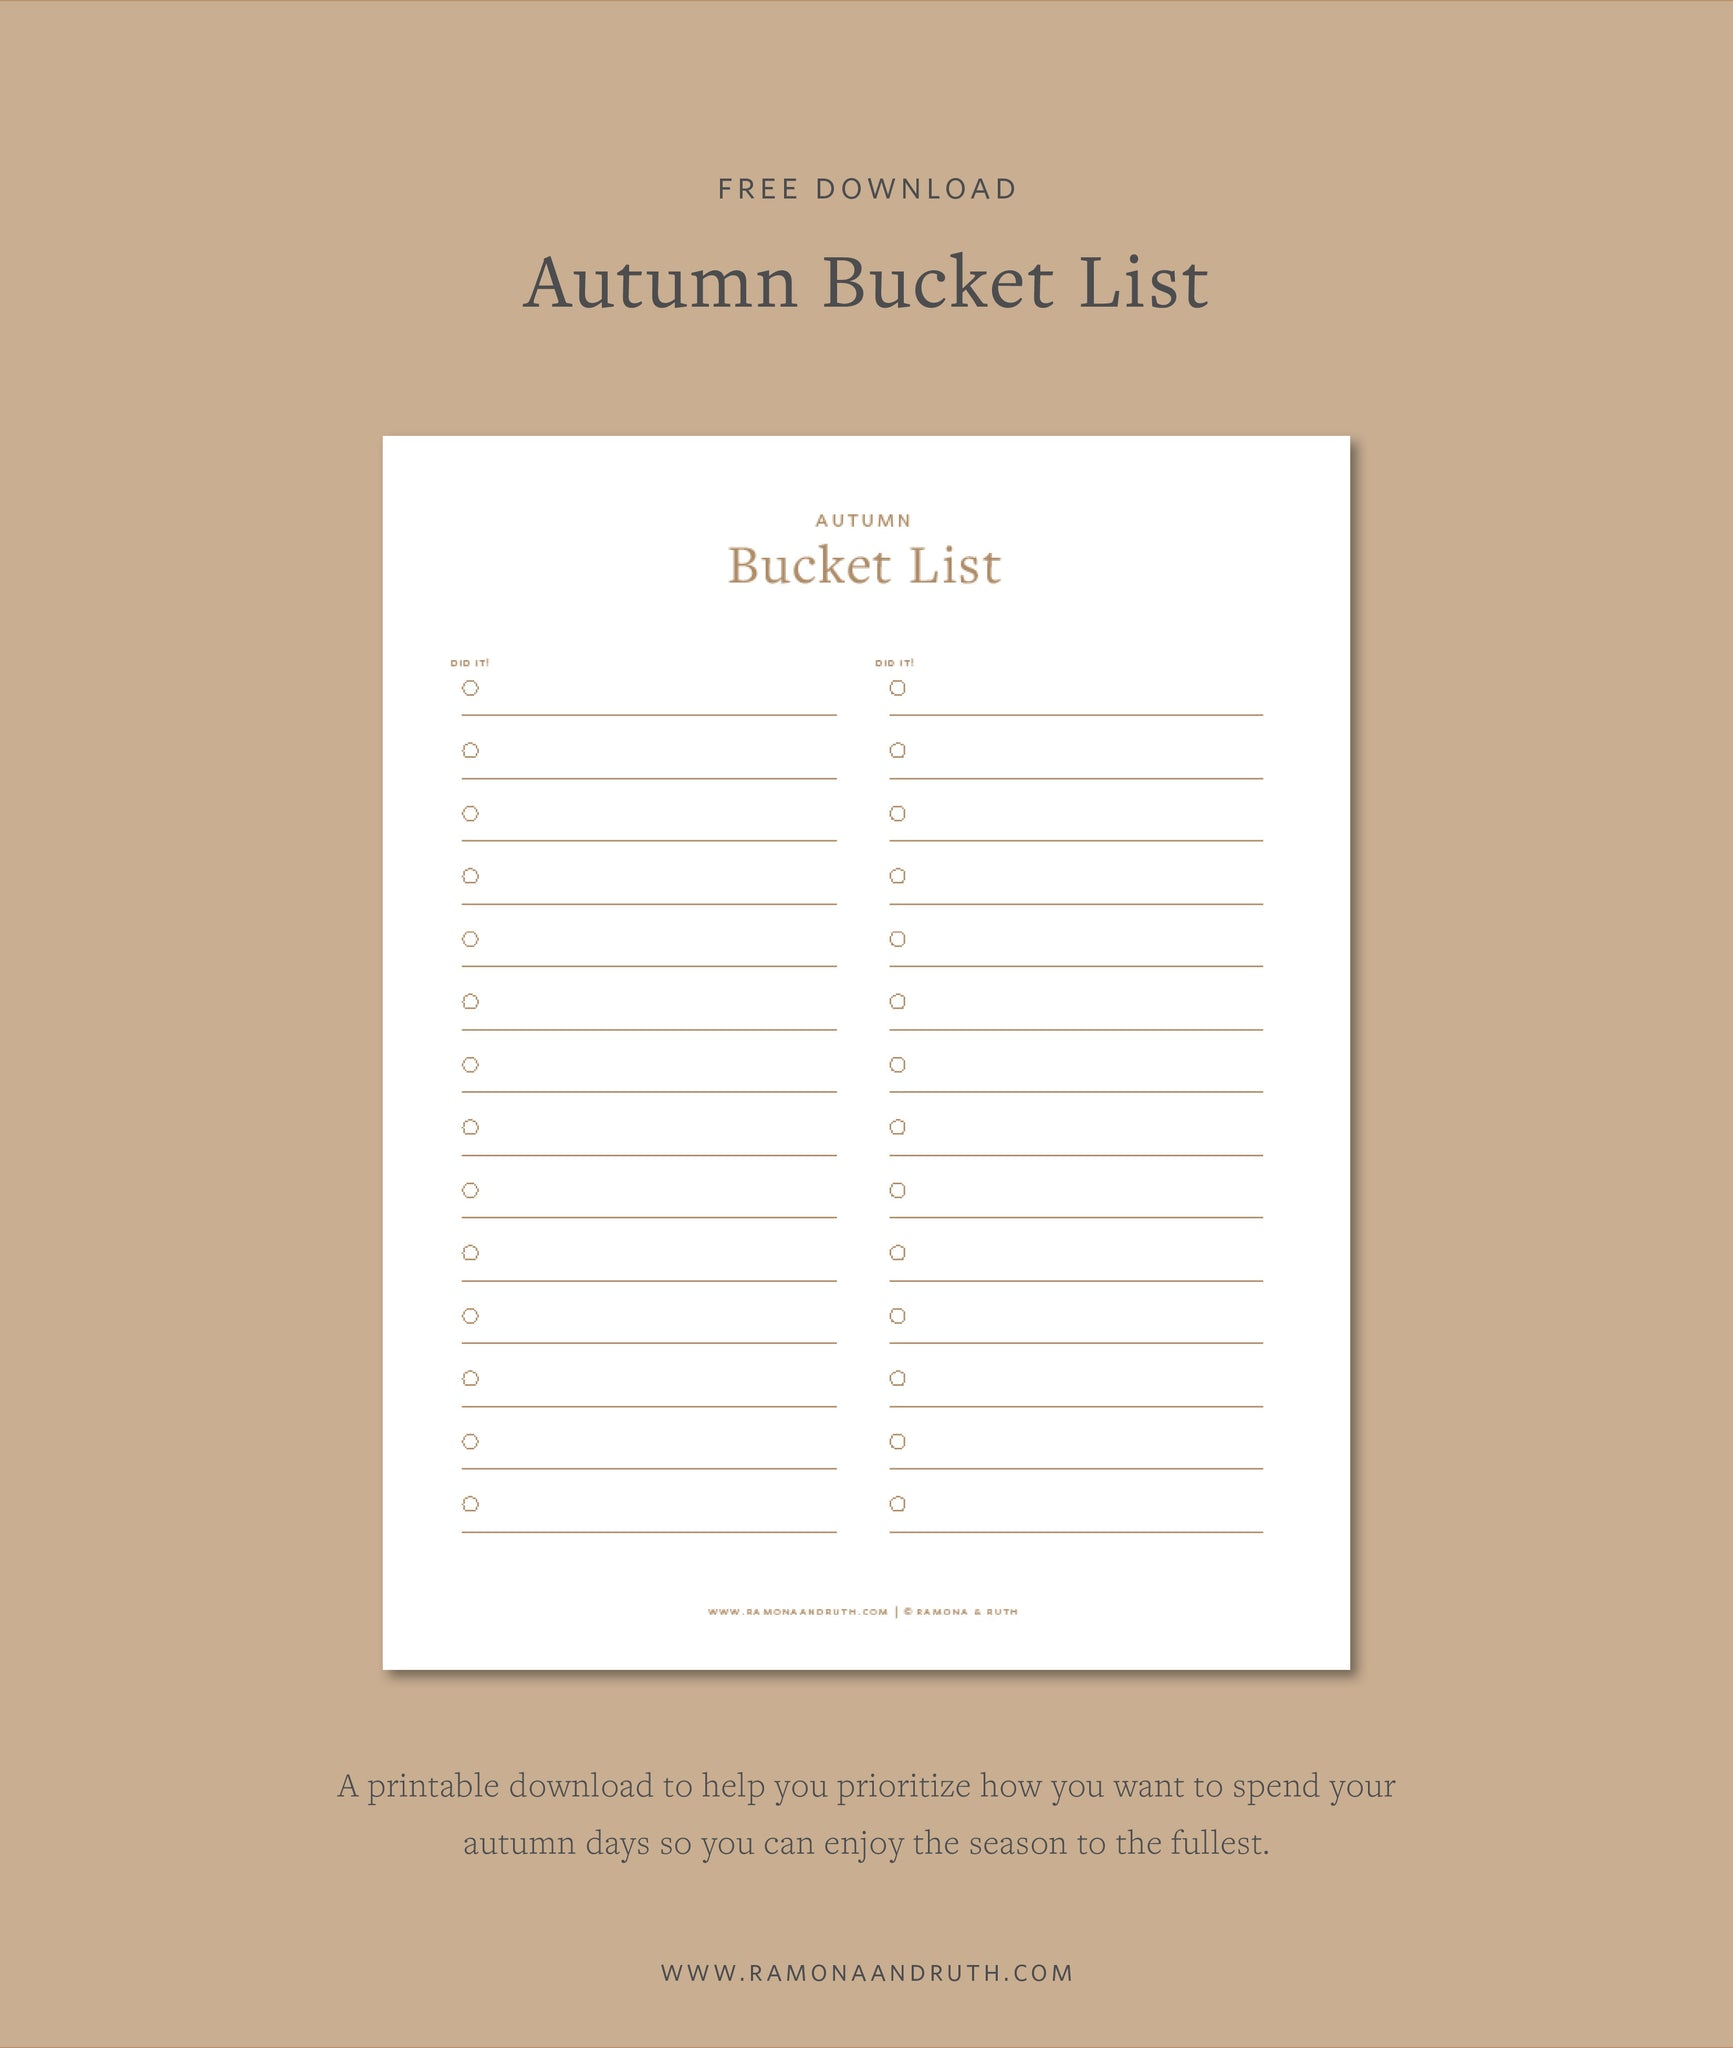 Autumn Bucket List Free Printable Download by Ramona & Ruth